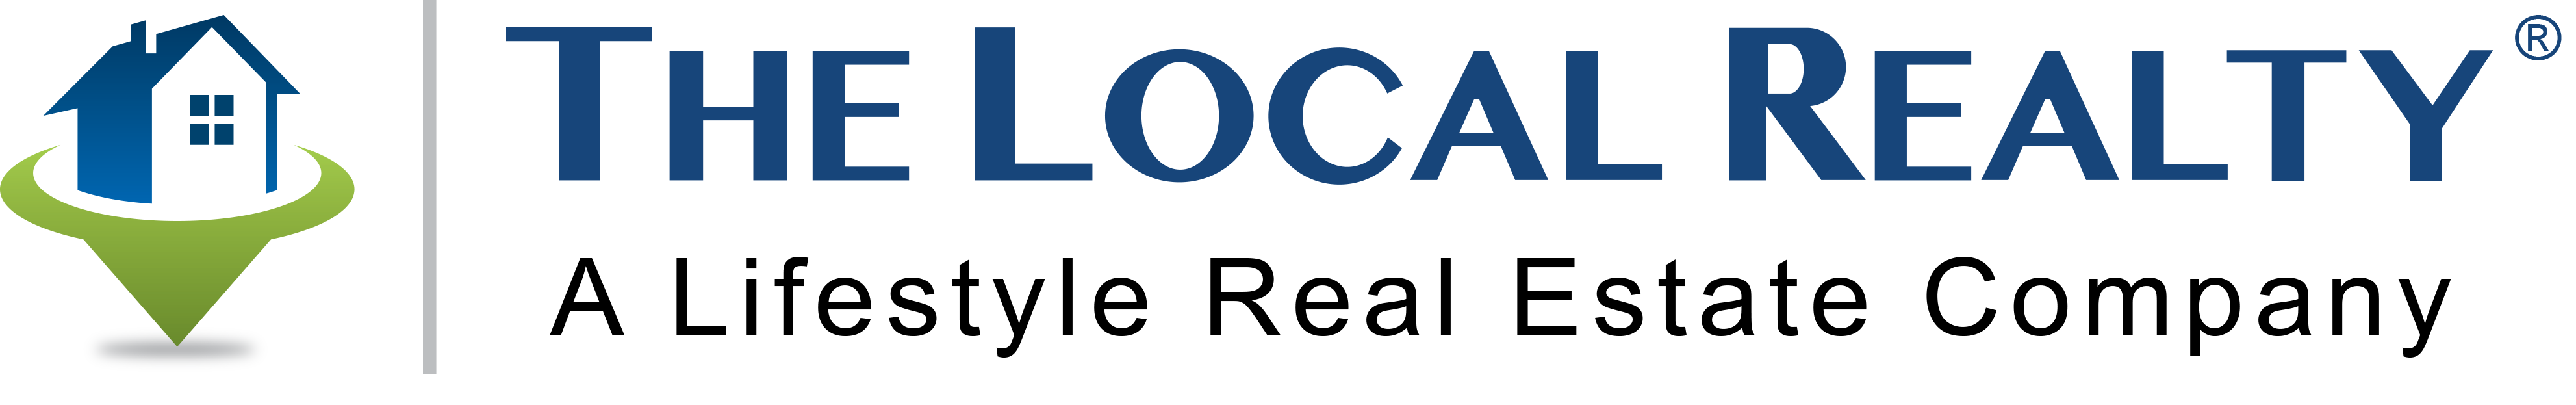 La Jolla Broker - The Local Realty